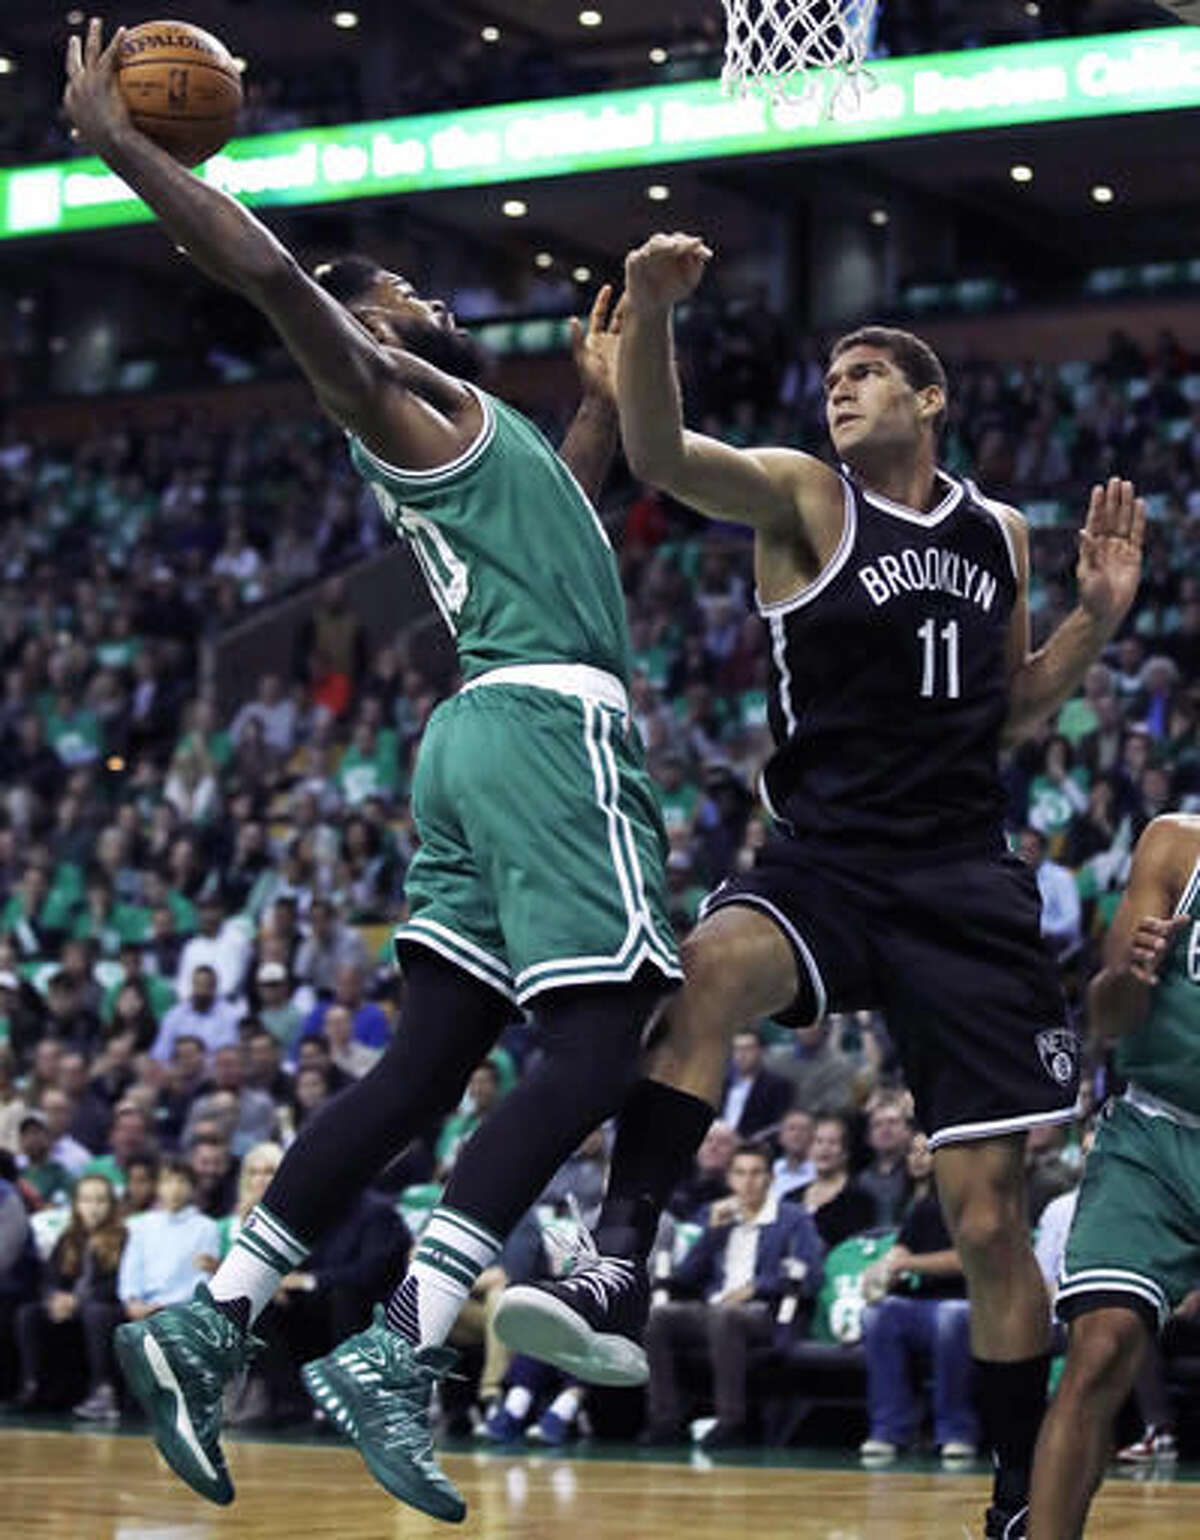 Boston Celtics forward Amir Johnson, left, grabs a rebound over Brooklyn Nets center Brook Lopez (11) during the first quarter of an NBA basketball game in Boston, Wednesday, Oct. 26, 2016. (AP Photo/Charles Krupa)